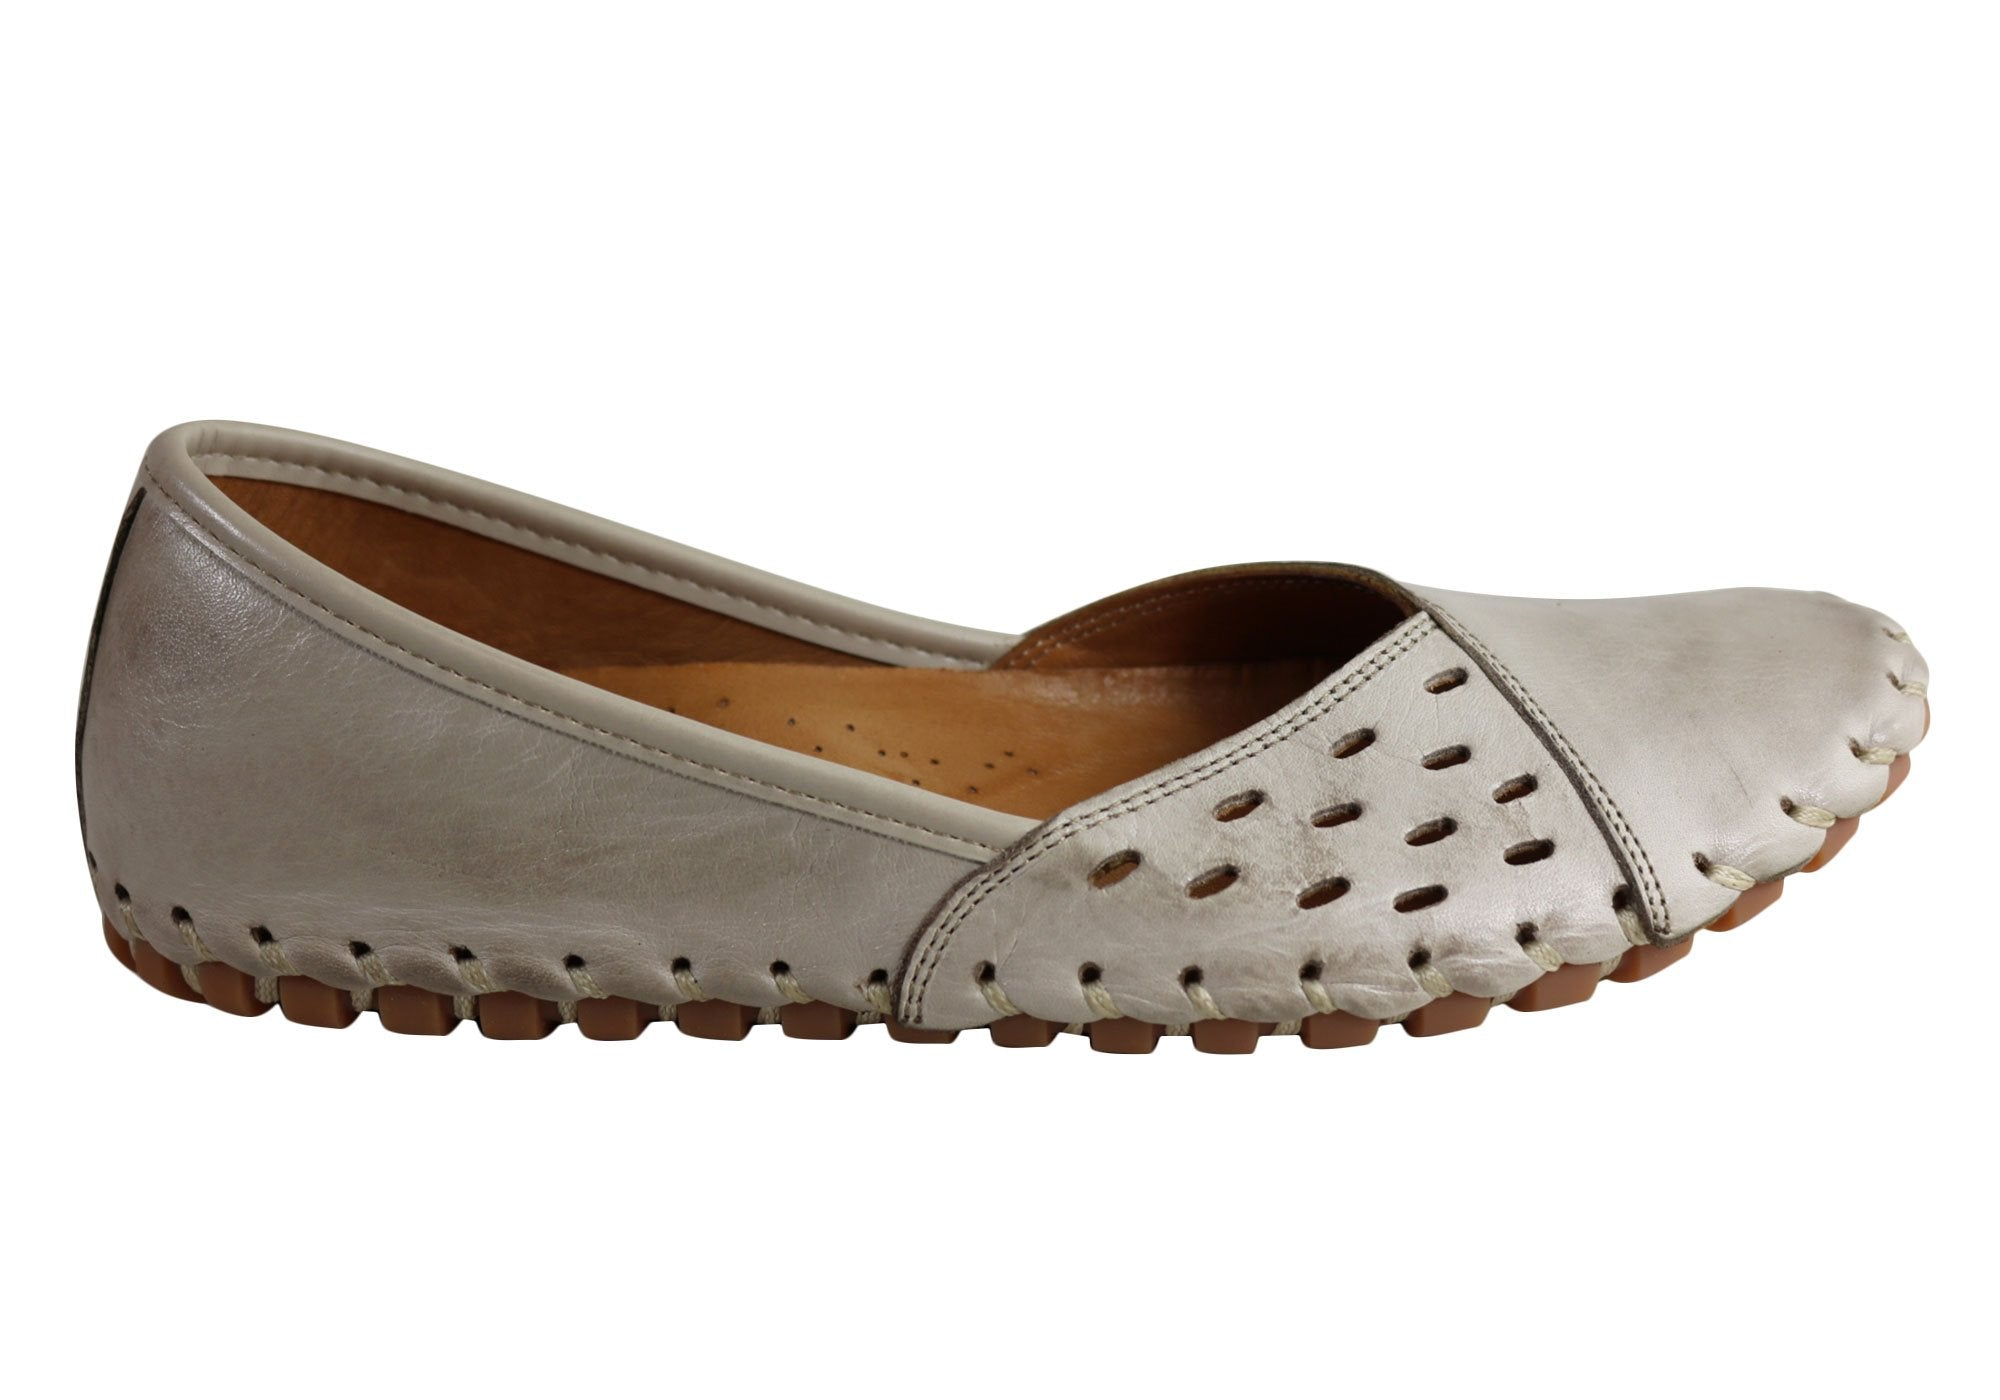 Cabello Comfort Missy Womens Leather Comfort Flat Shoes Made In Turkey